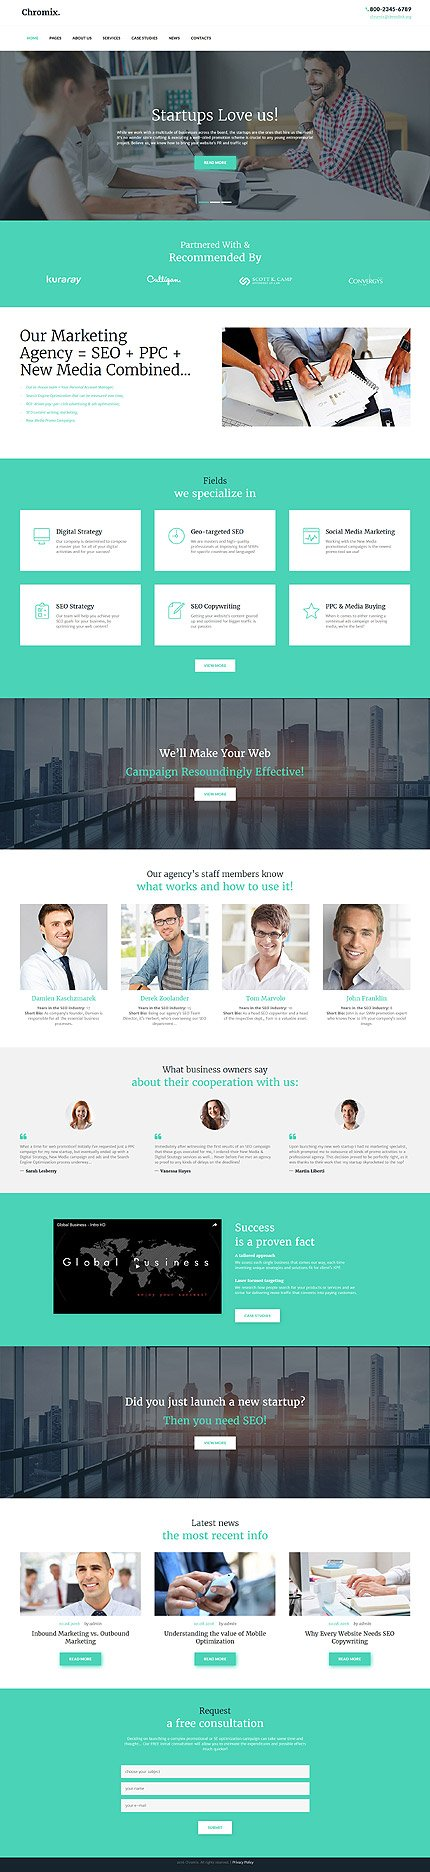 WordPress Theme/Template 60046 Main Page Screenshot